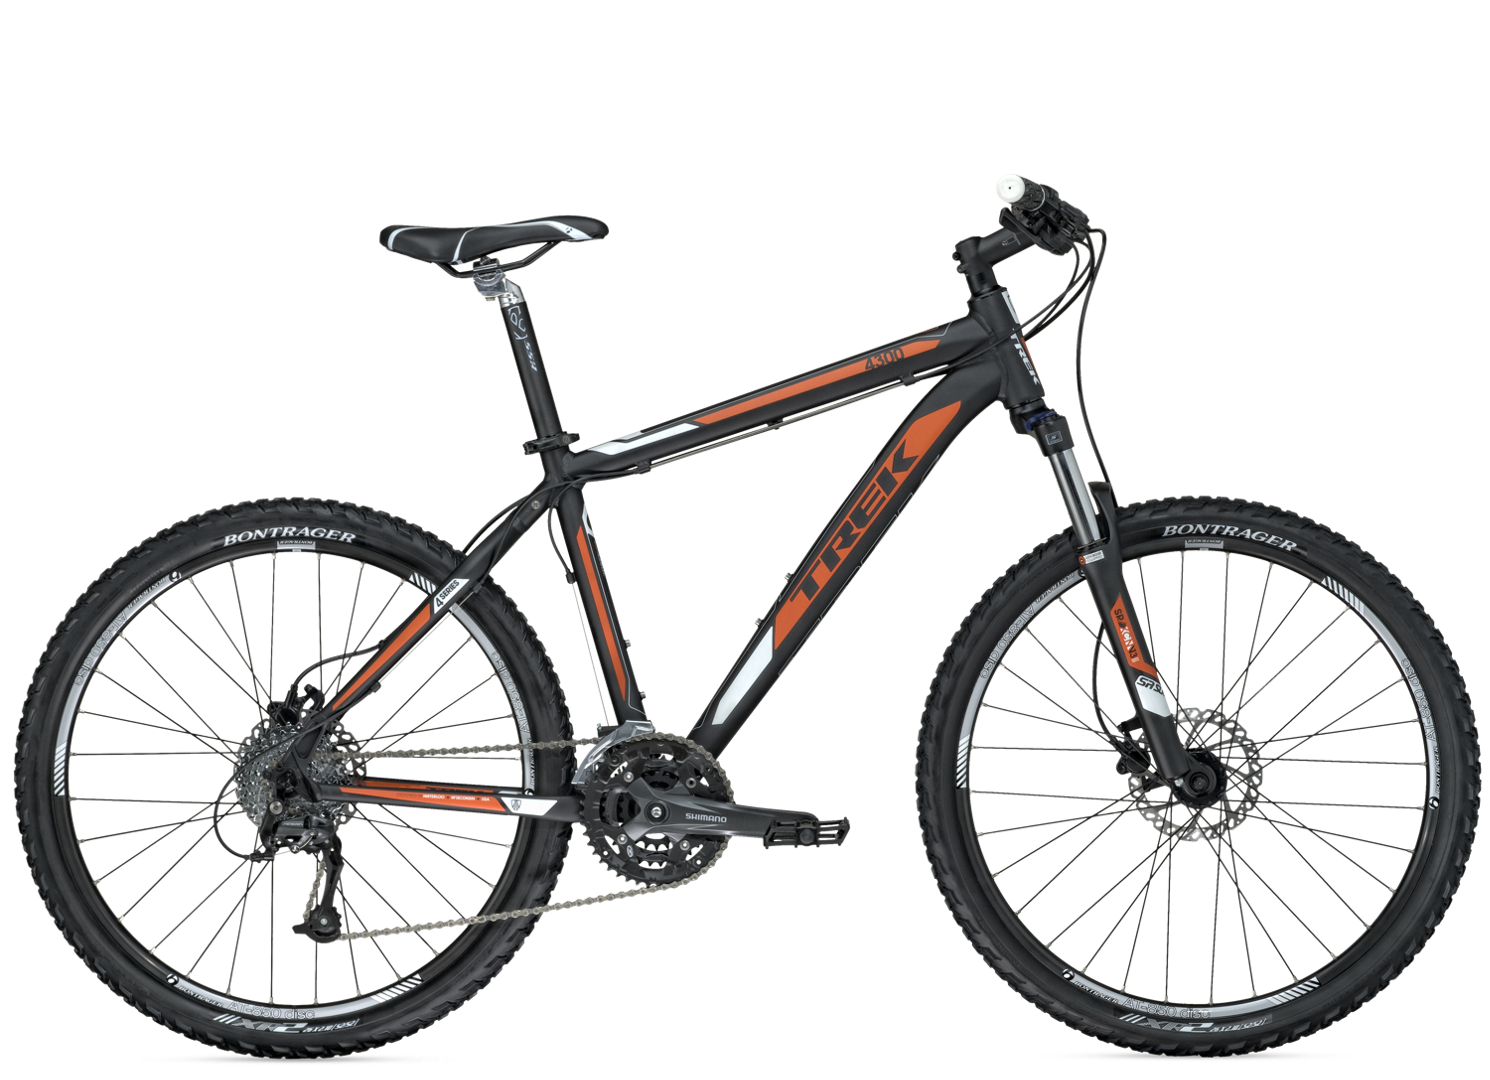 4300 Disc Trek Bicycle With Images Cross Country Mountain